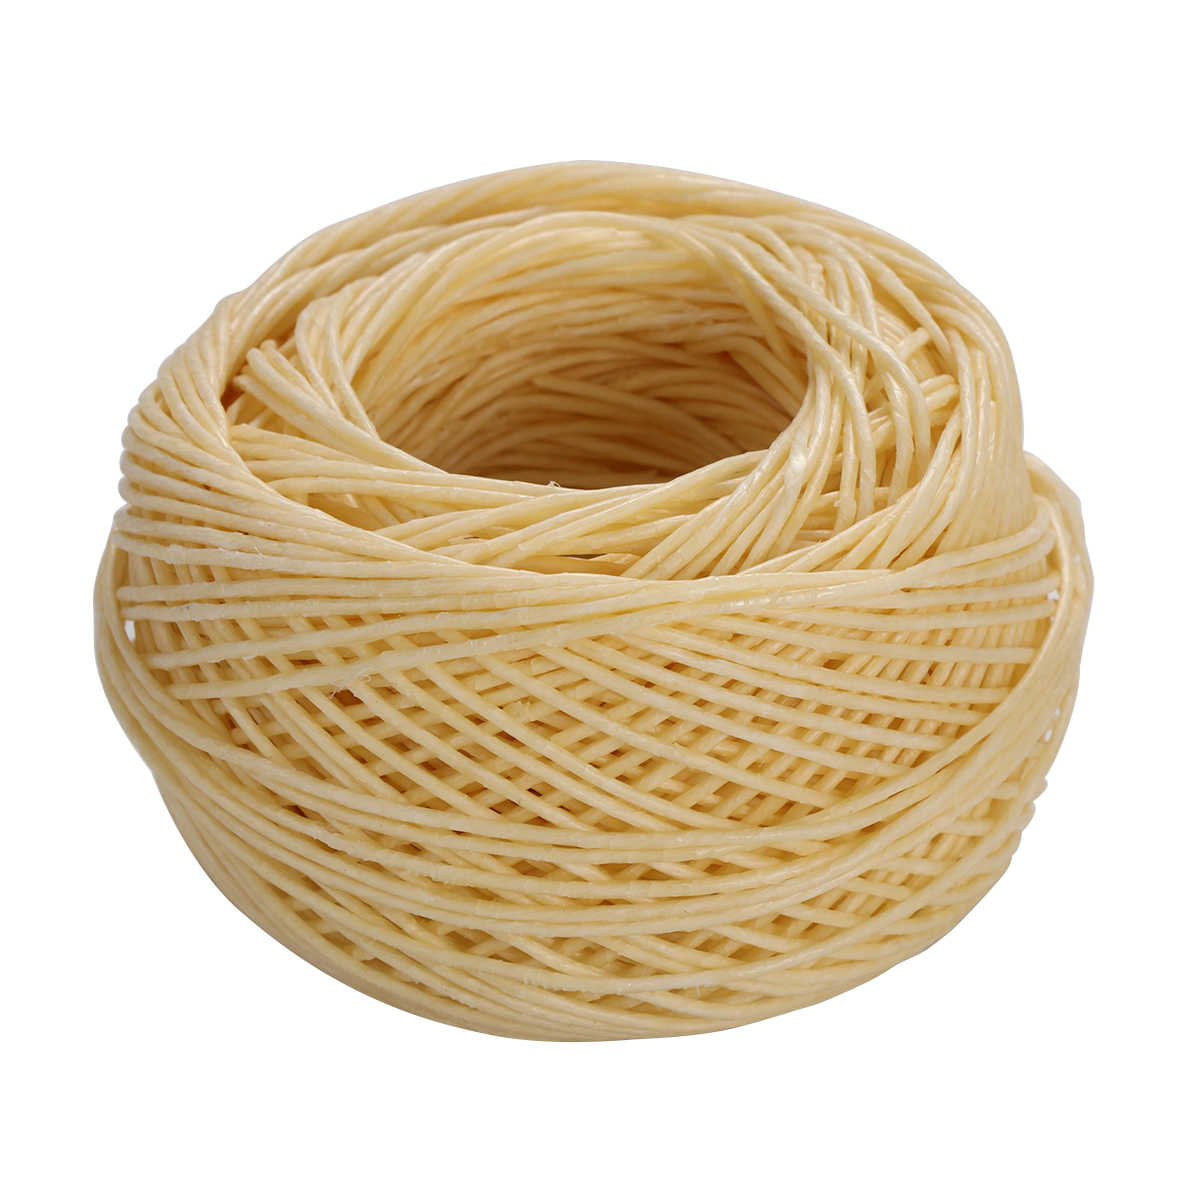 61M Waxed Cotton Cord Hemp Wick Candle Wicks Low Smoke Cotton Core for Candle Making Candle DIY Craft Project